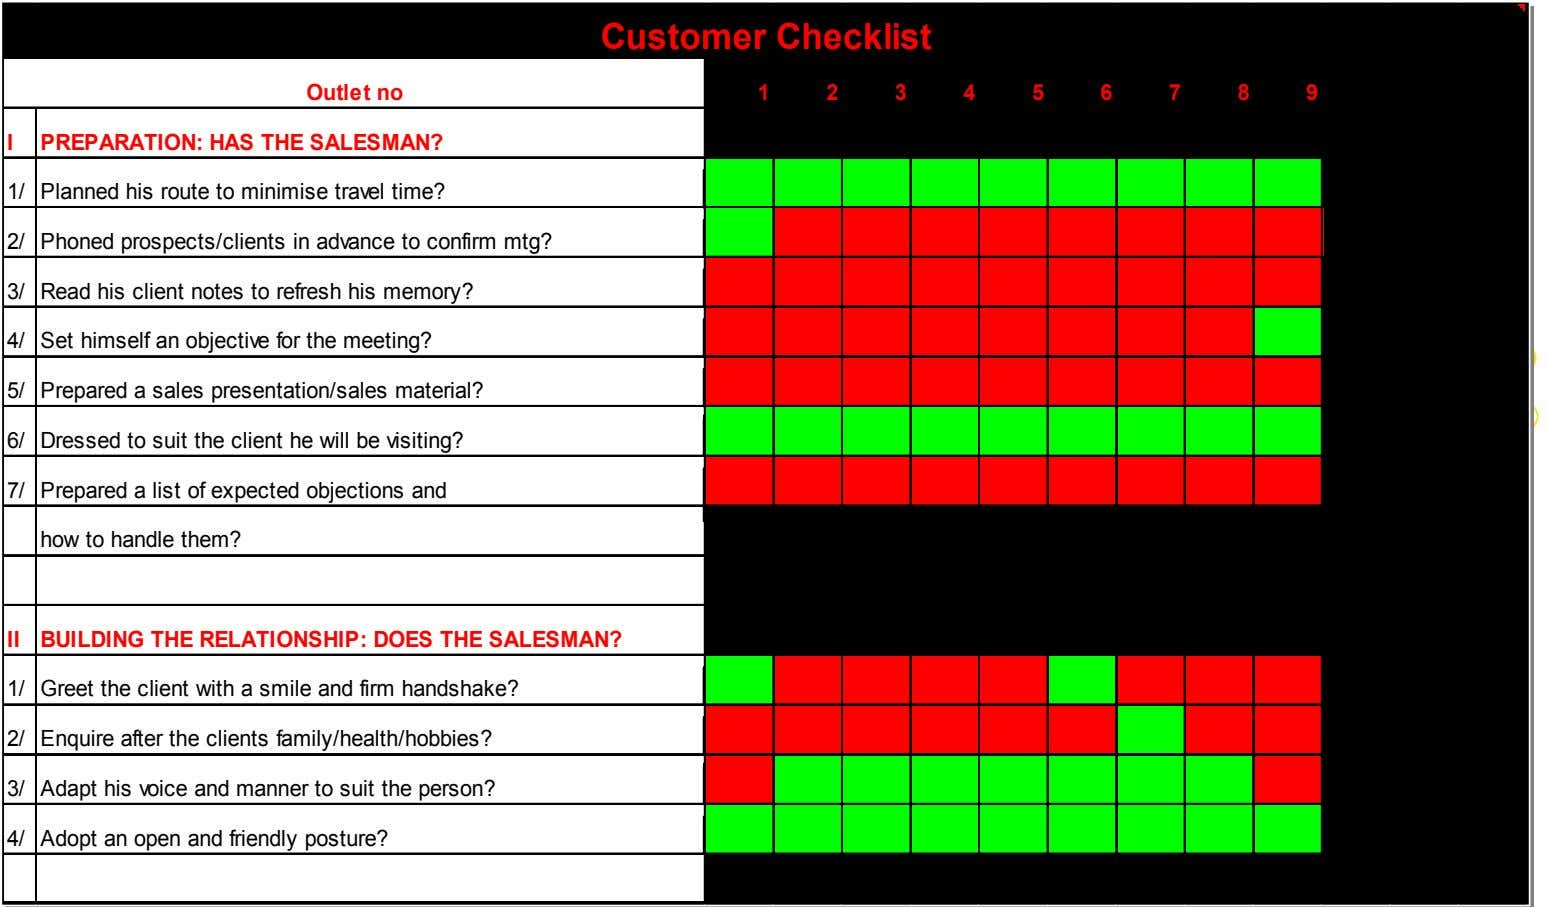 Customer Checklist Outlet no 123456789 I PREPARATION: HAS THE SALESMAN? 1/ Planned his route to